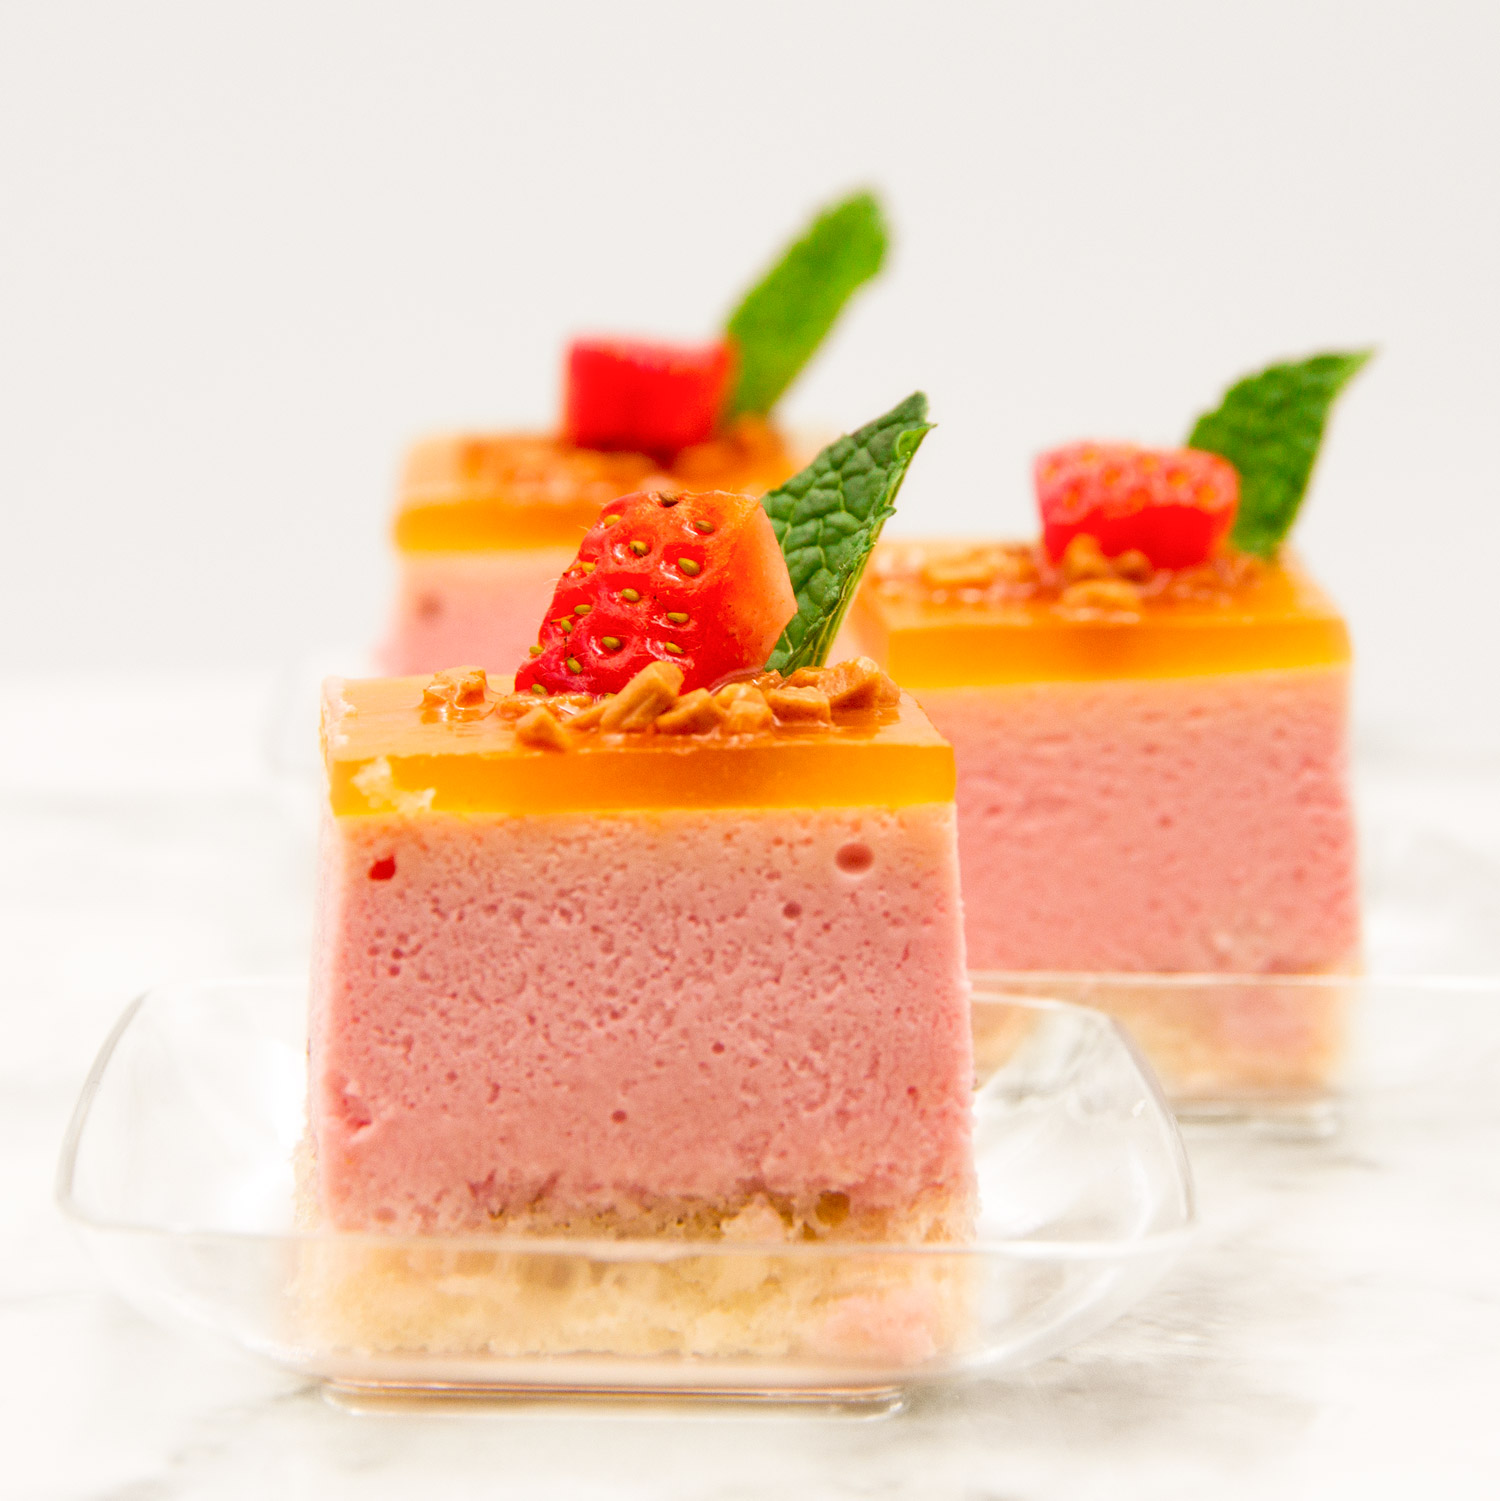 草莓血橙慕斯餅 Blood Orange and Strawberry Mousse Cake